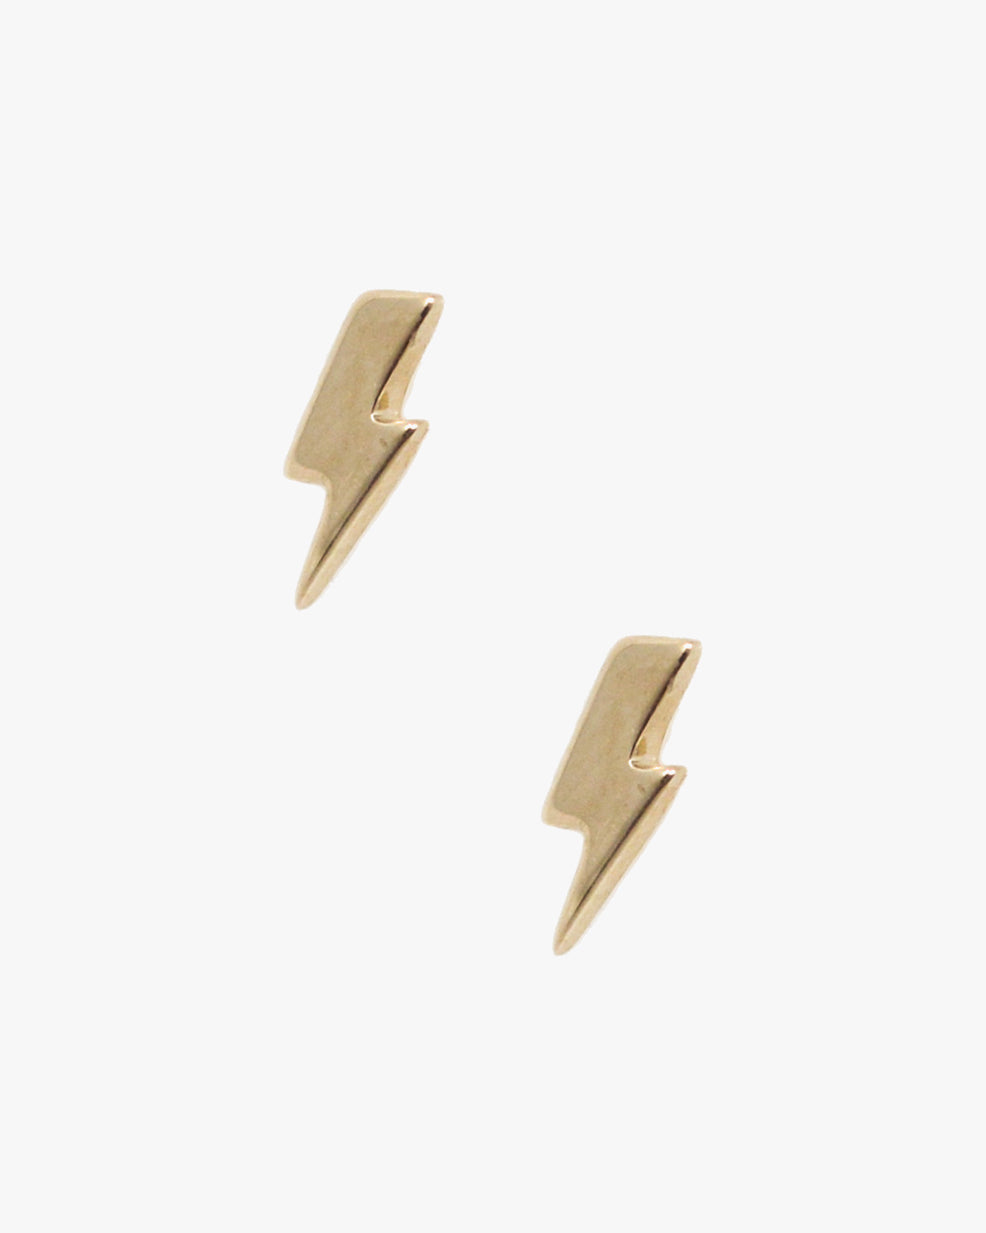 14k gold lightning bolt stud earring